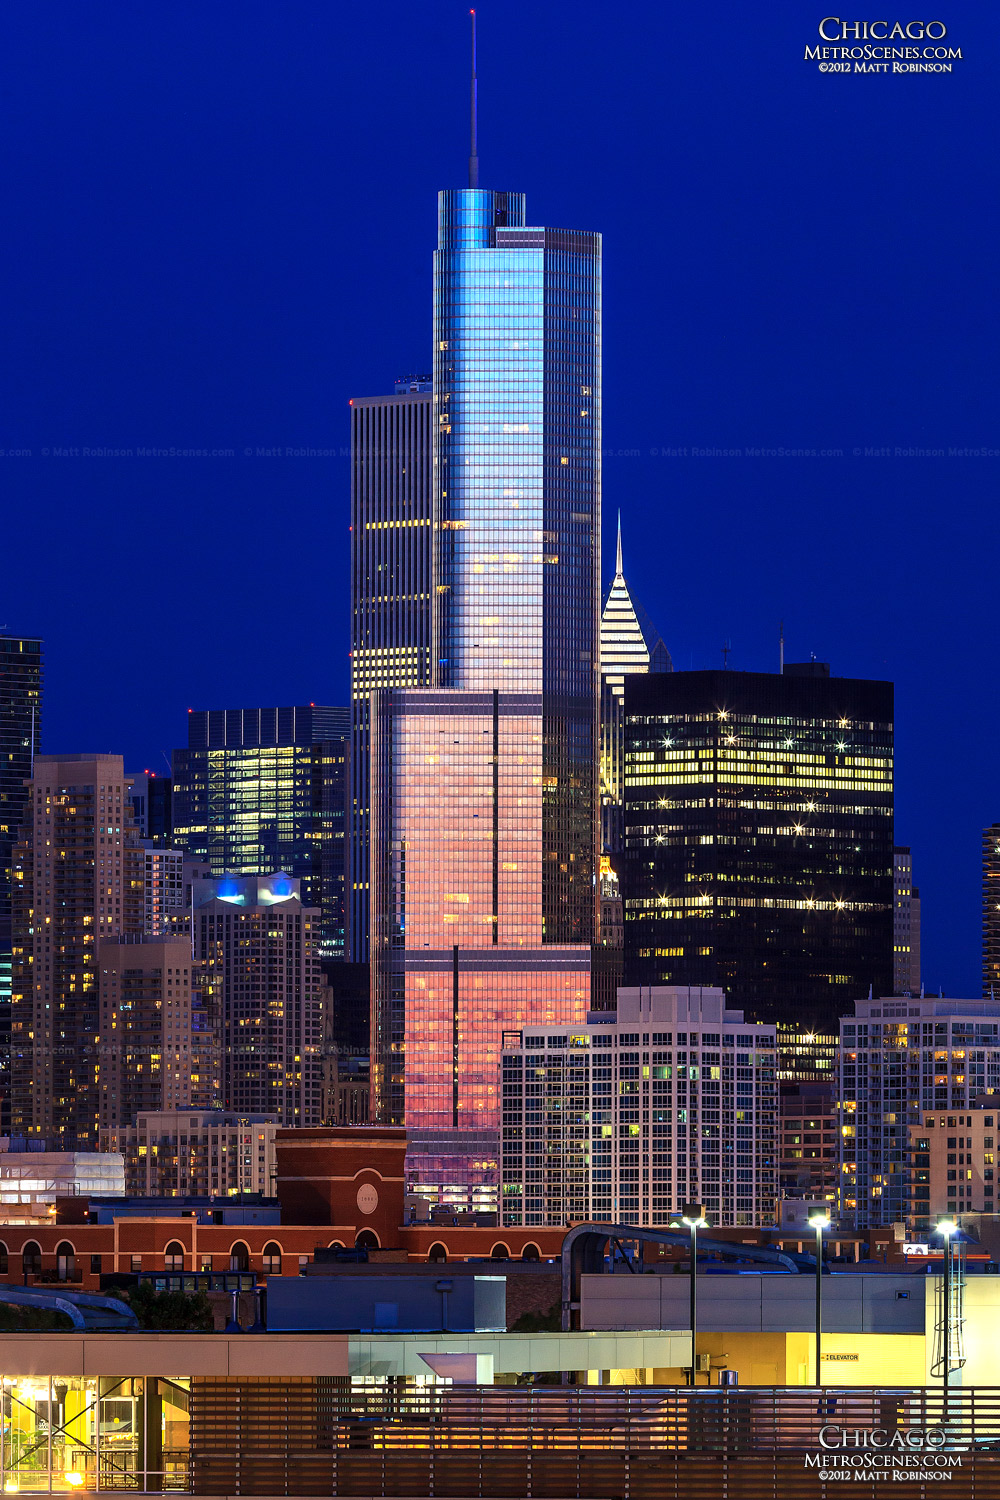 Pink and Blue Sunset mirrored on Trump Tower Chicago